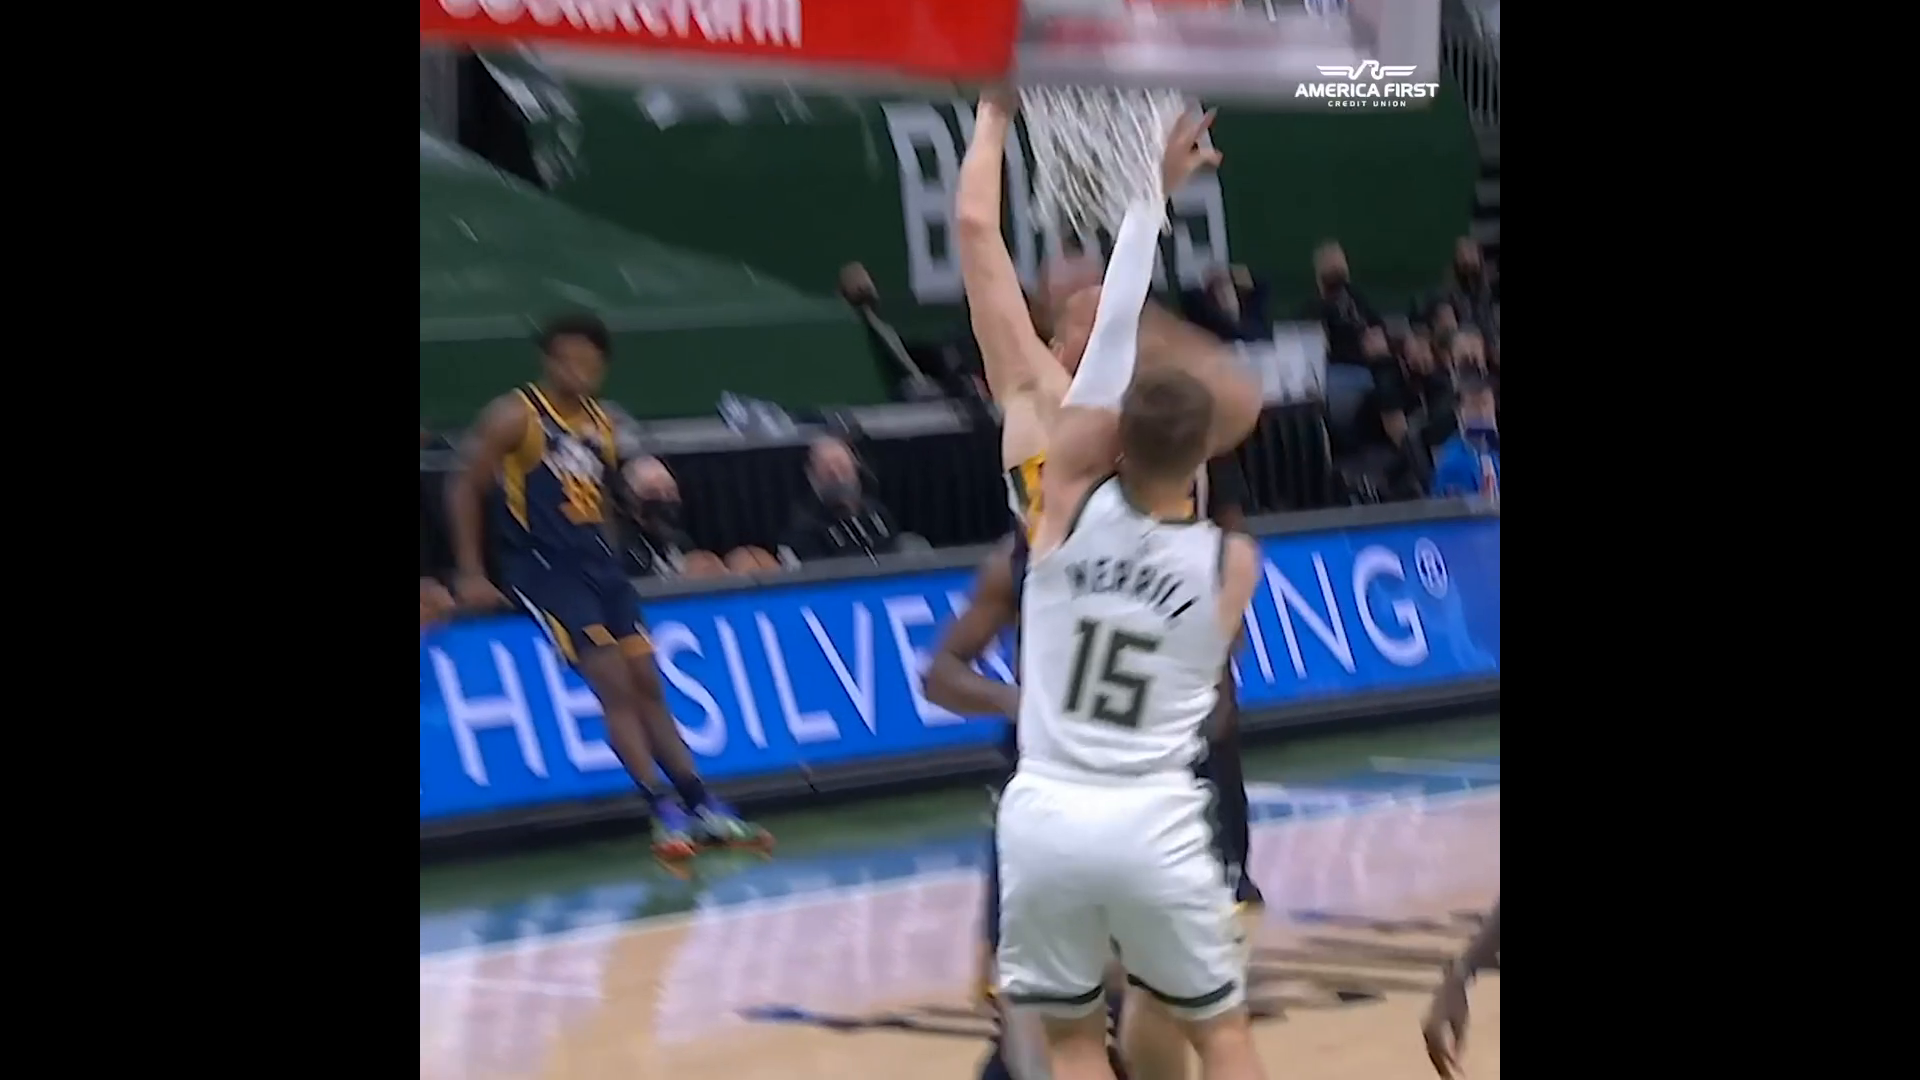 Donovan gets out of his seat after Bojan JAM | #InstantRewind